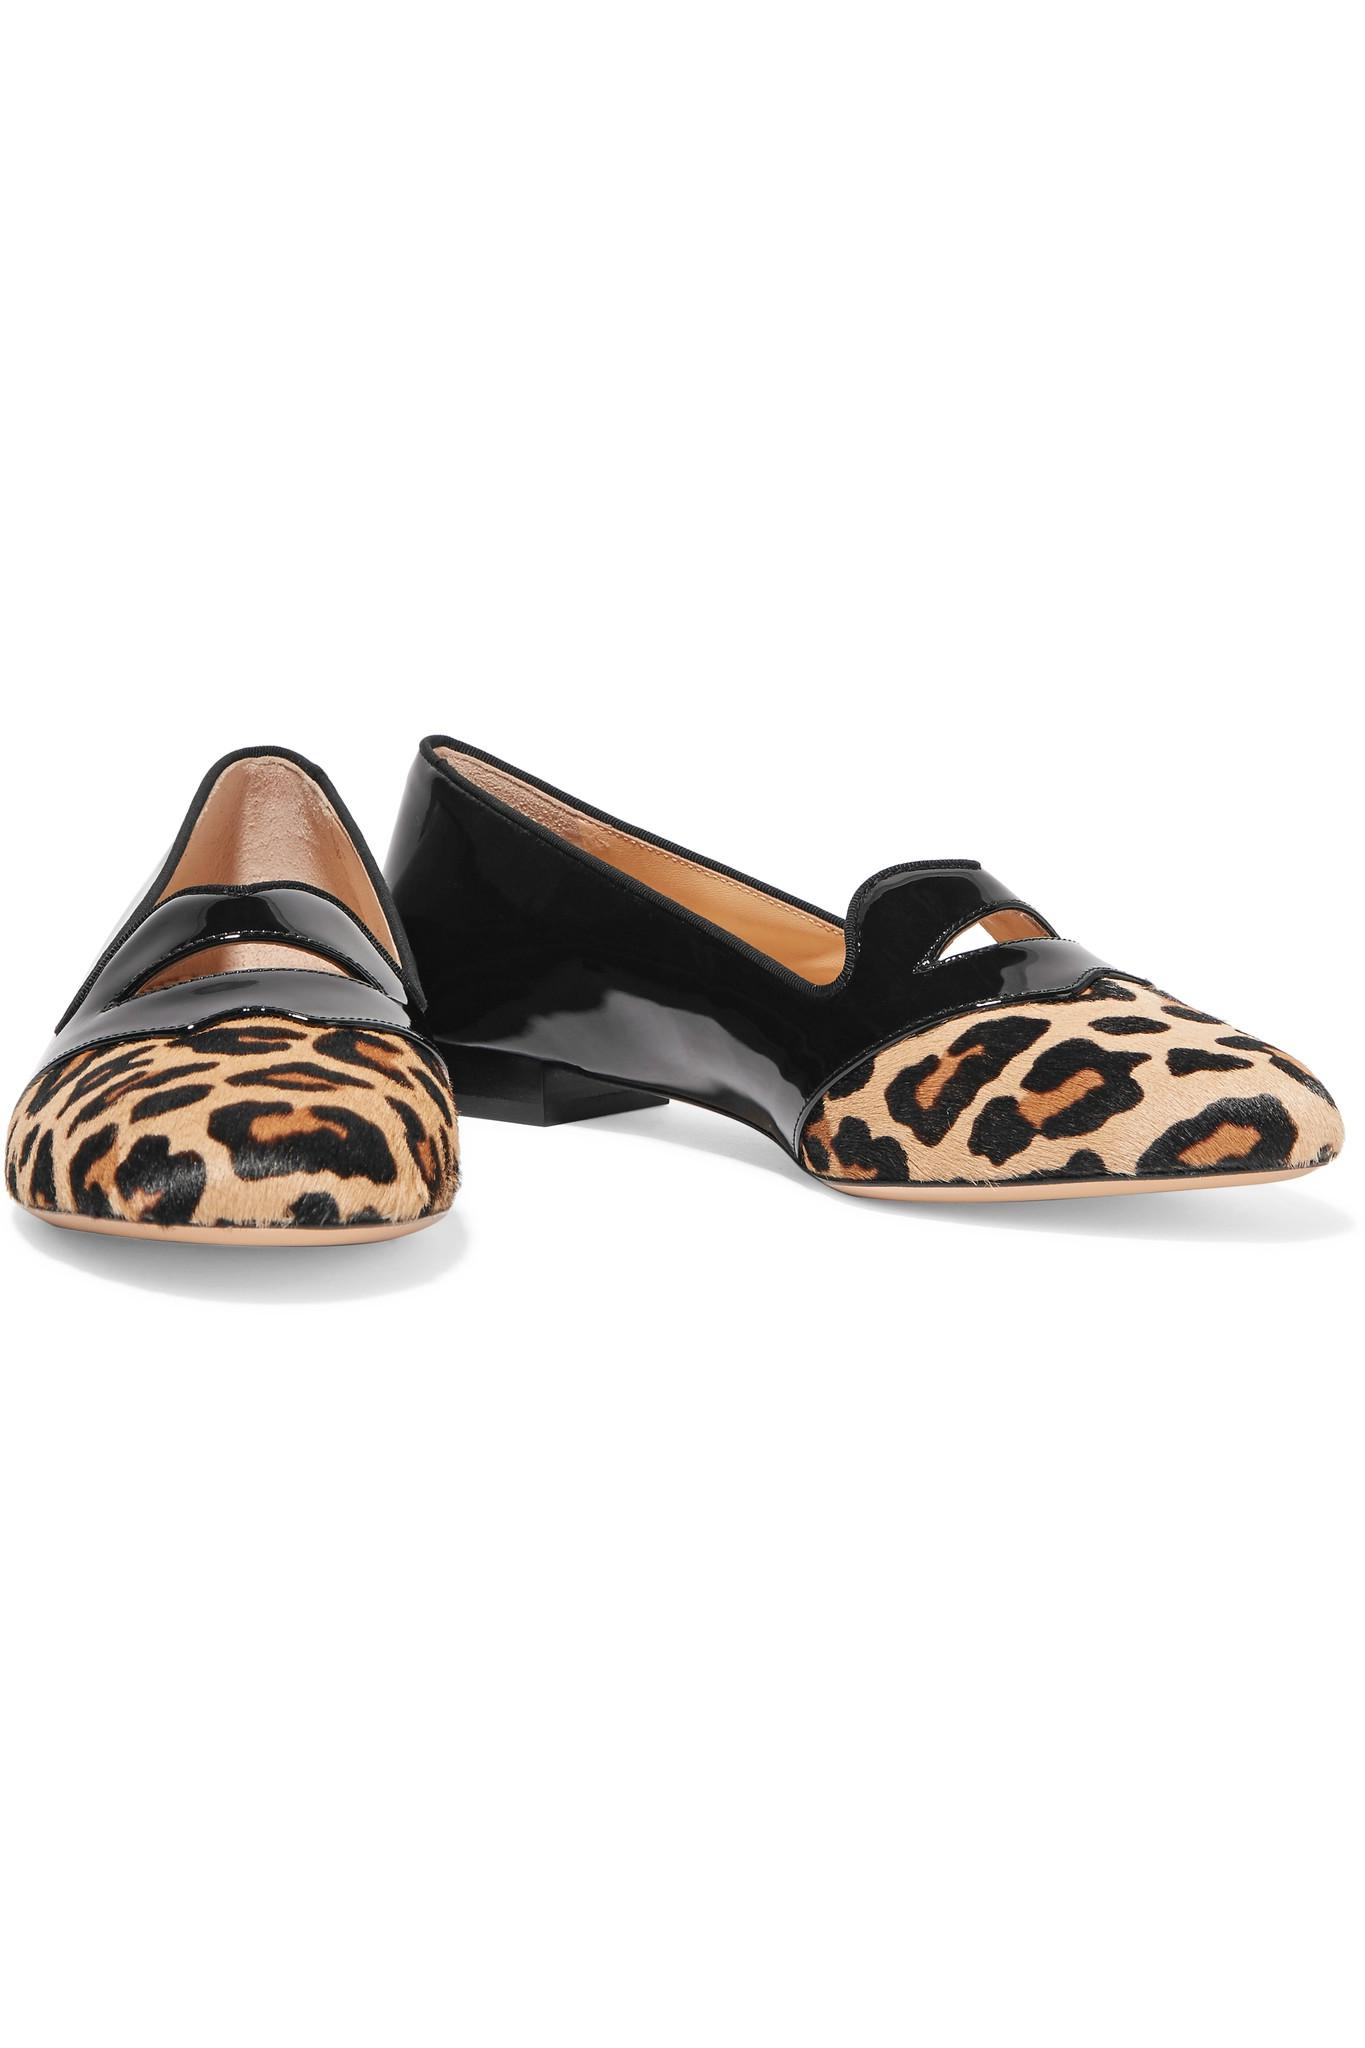 Charlotte Olympia Ponyhair Bisoux Flats sale 2014 unisex sale huge surprise discount geniue stockist pre order cheap price latest collections cheap price 3vzYxQ